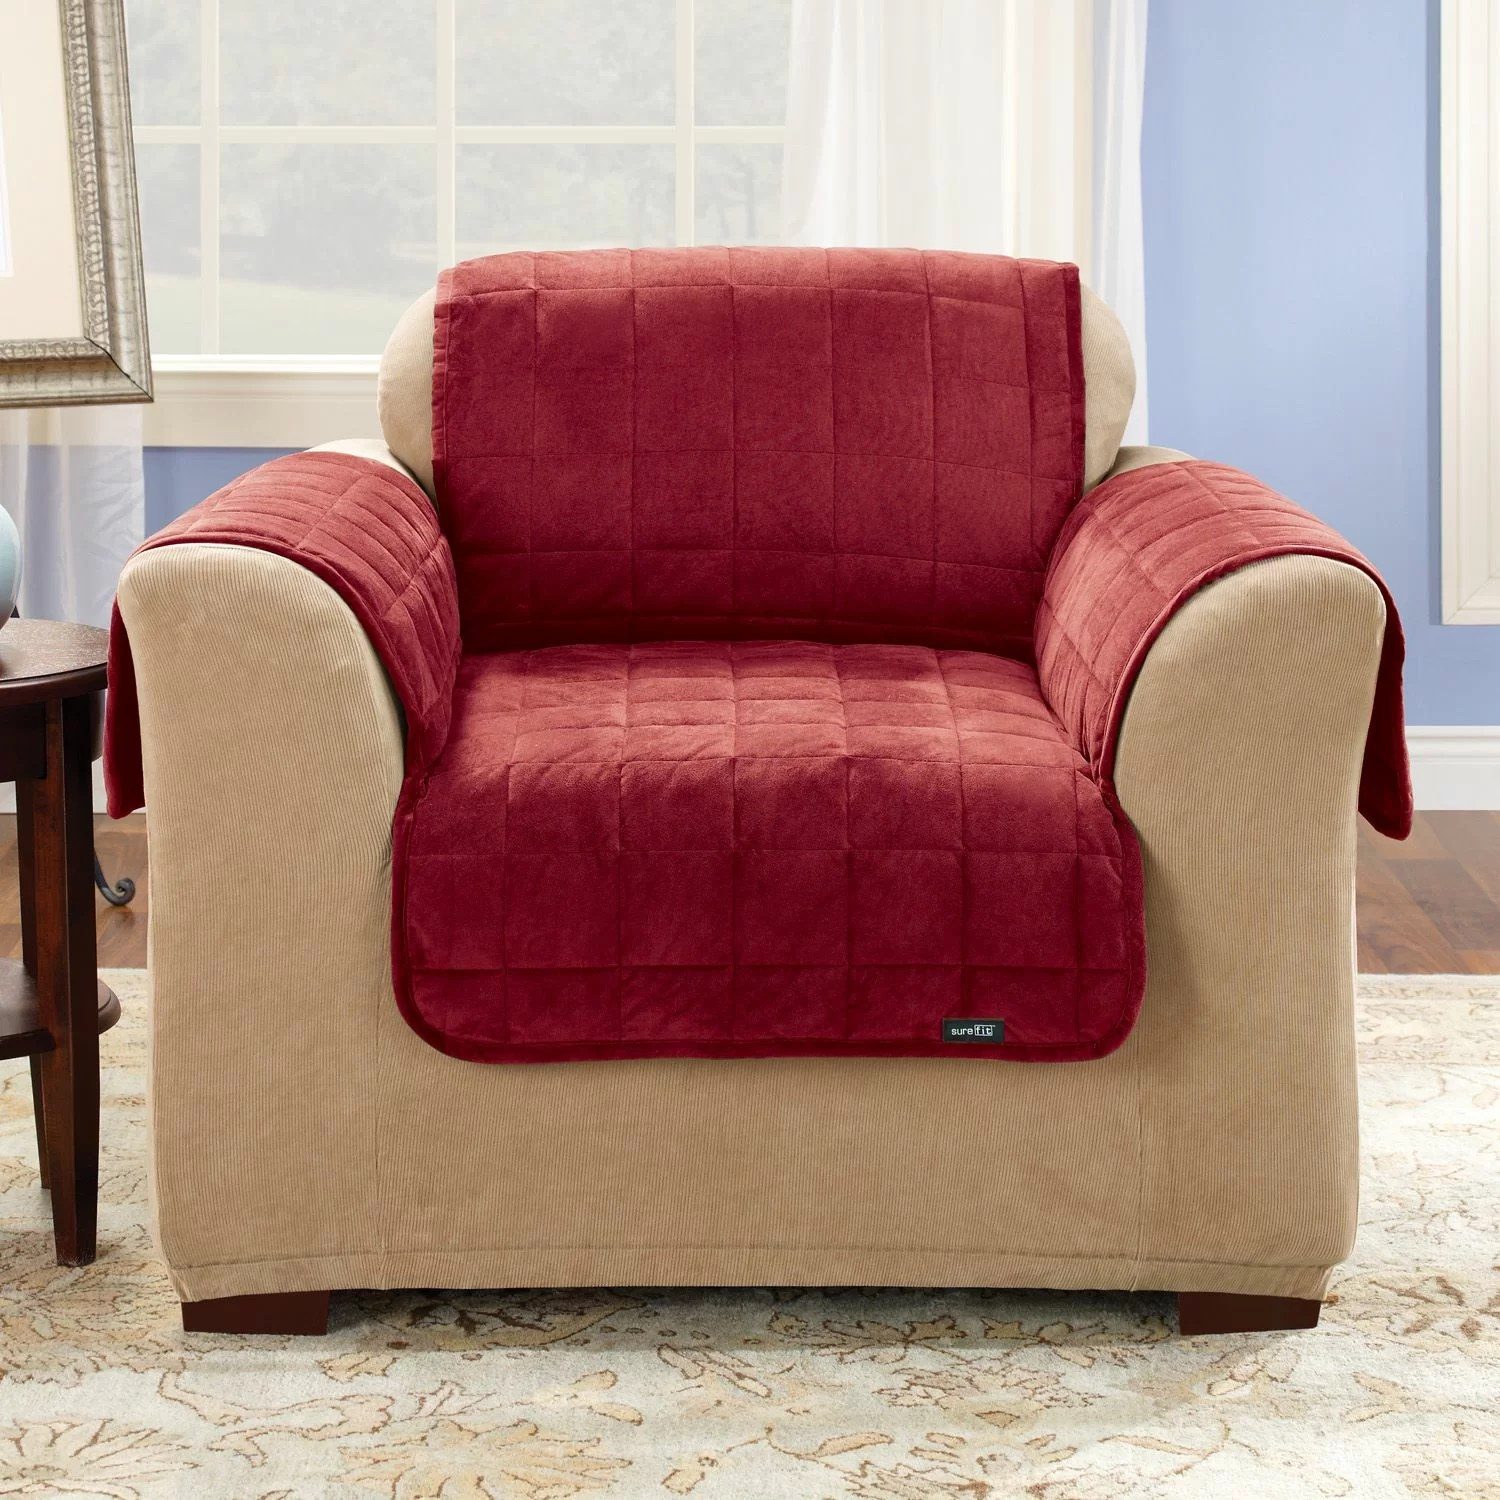 club chair slipcover fishing spare parts sure fit deluxe pet comfort and reviews